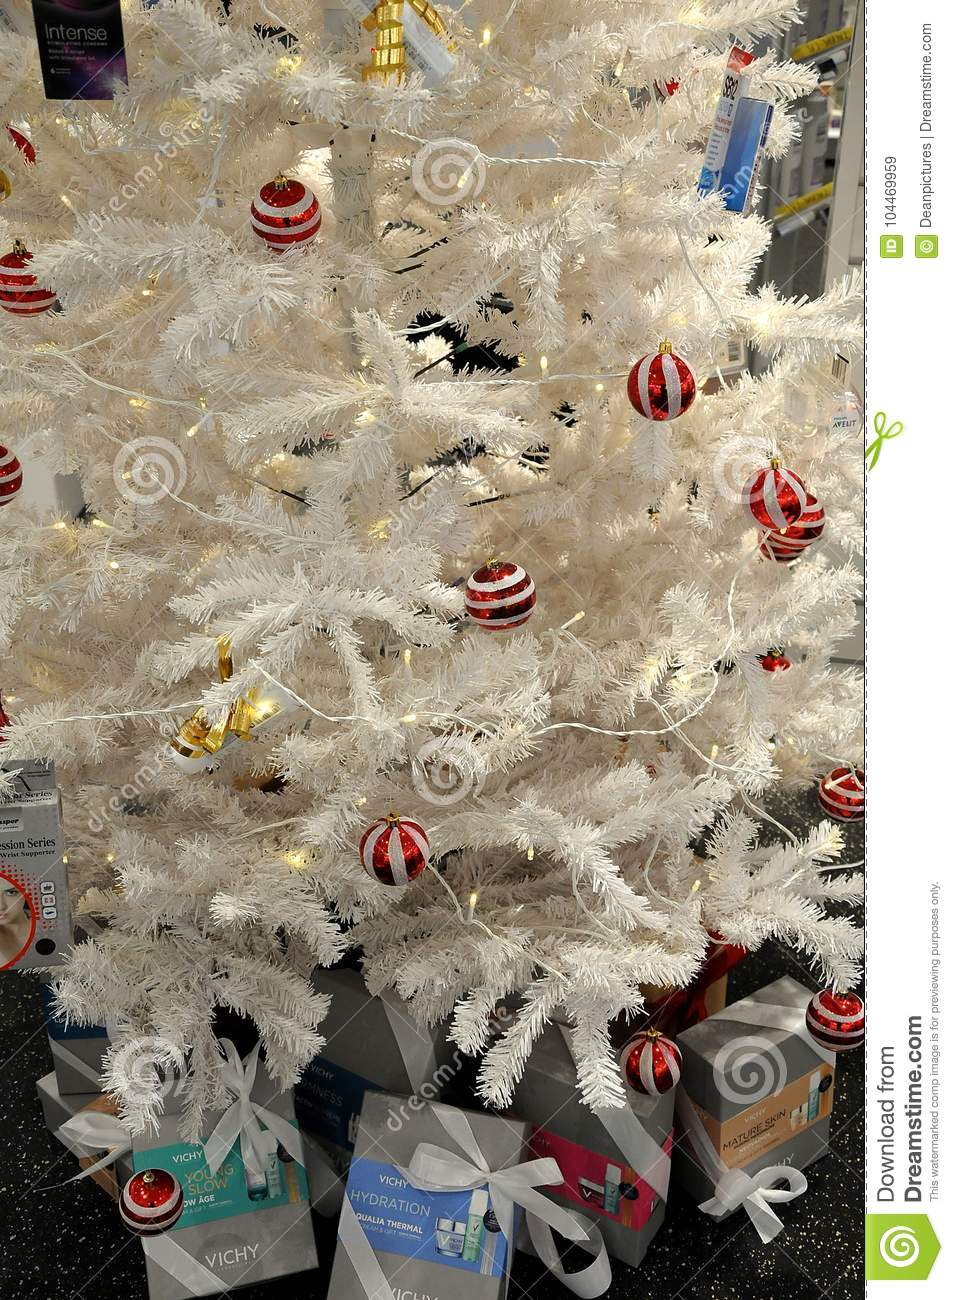 artificial christmas decorated with ornaments - Pharmacy Christmas Ornaments